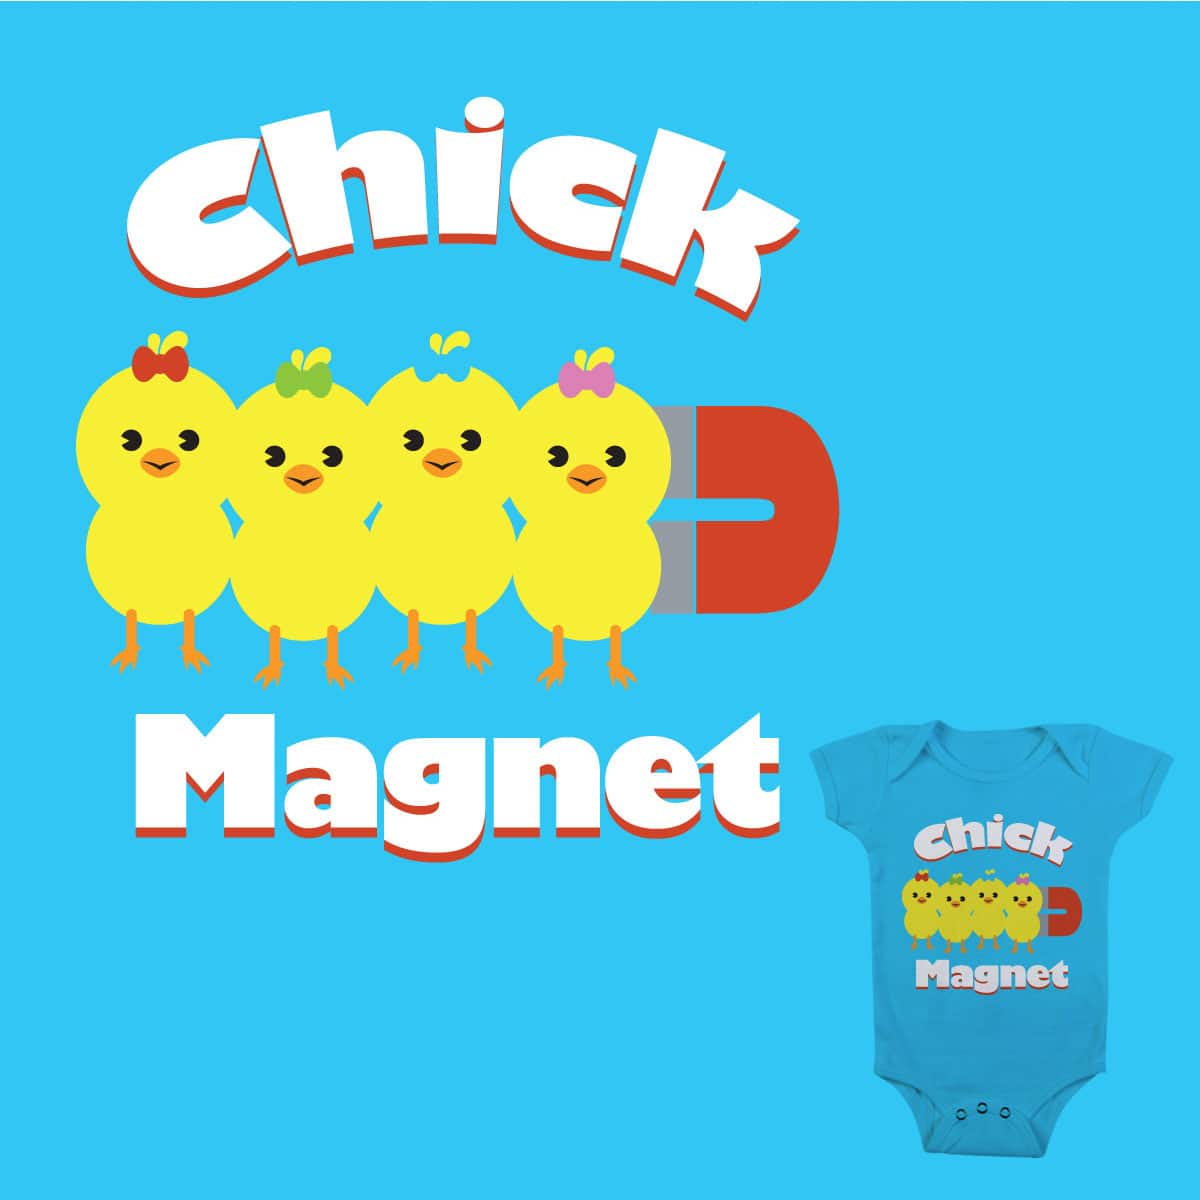 Chick Magnet by AlejandroLabrada on Threadless